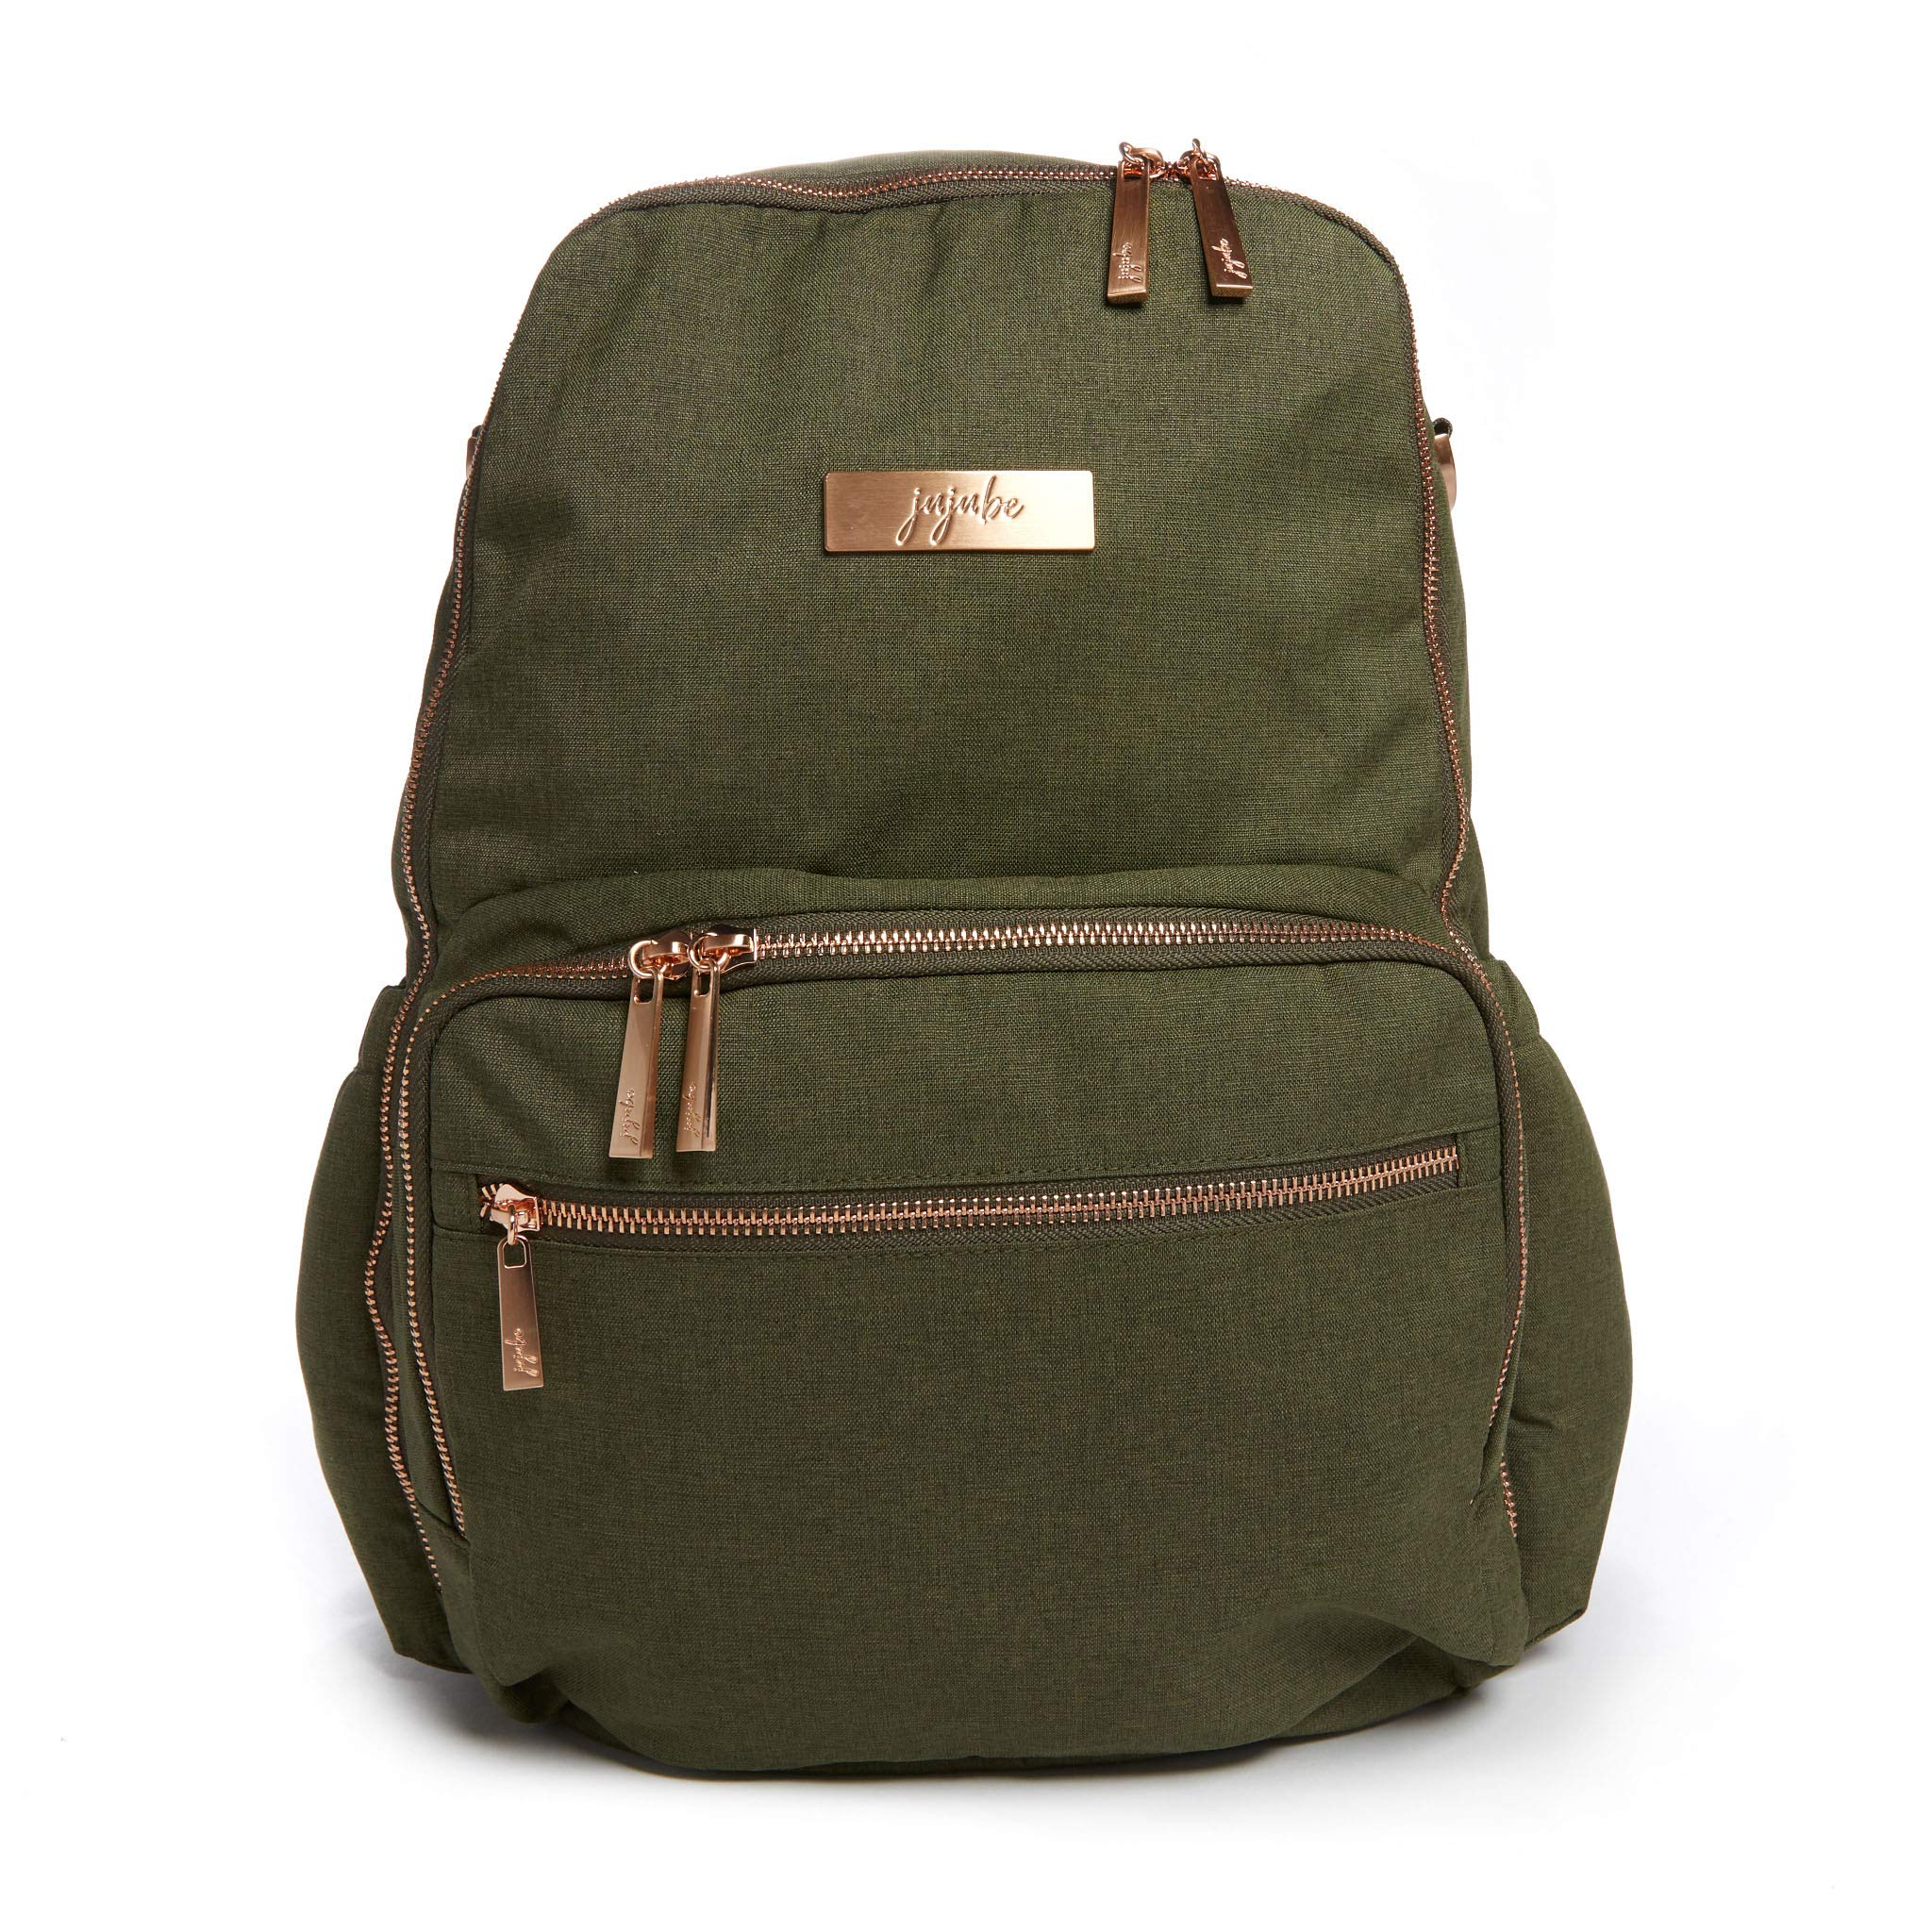 JuJuBe Zealous Backpack | Olives | Chromatics | Lightweight, Travel-Friendly, Stylish Diaper Bag, Multi Functional Backpack Purse for Kids and Adults, Casual Daypack | Changing Pad Included